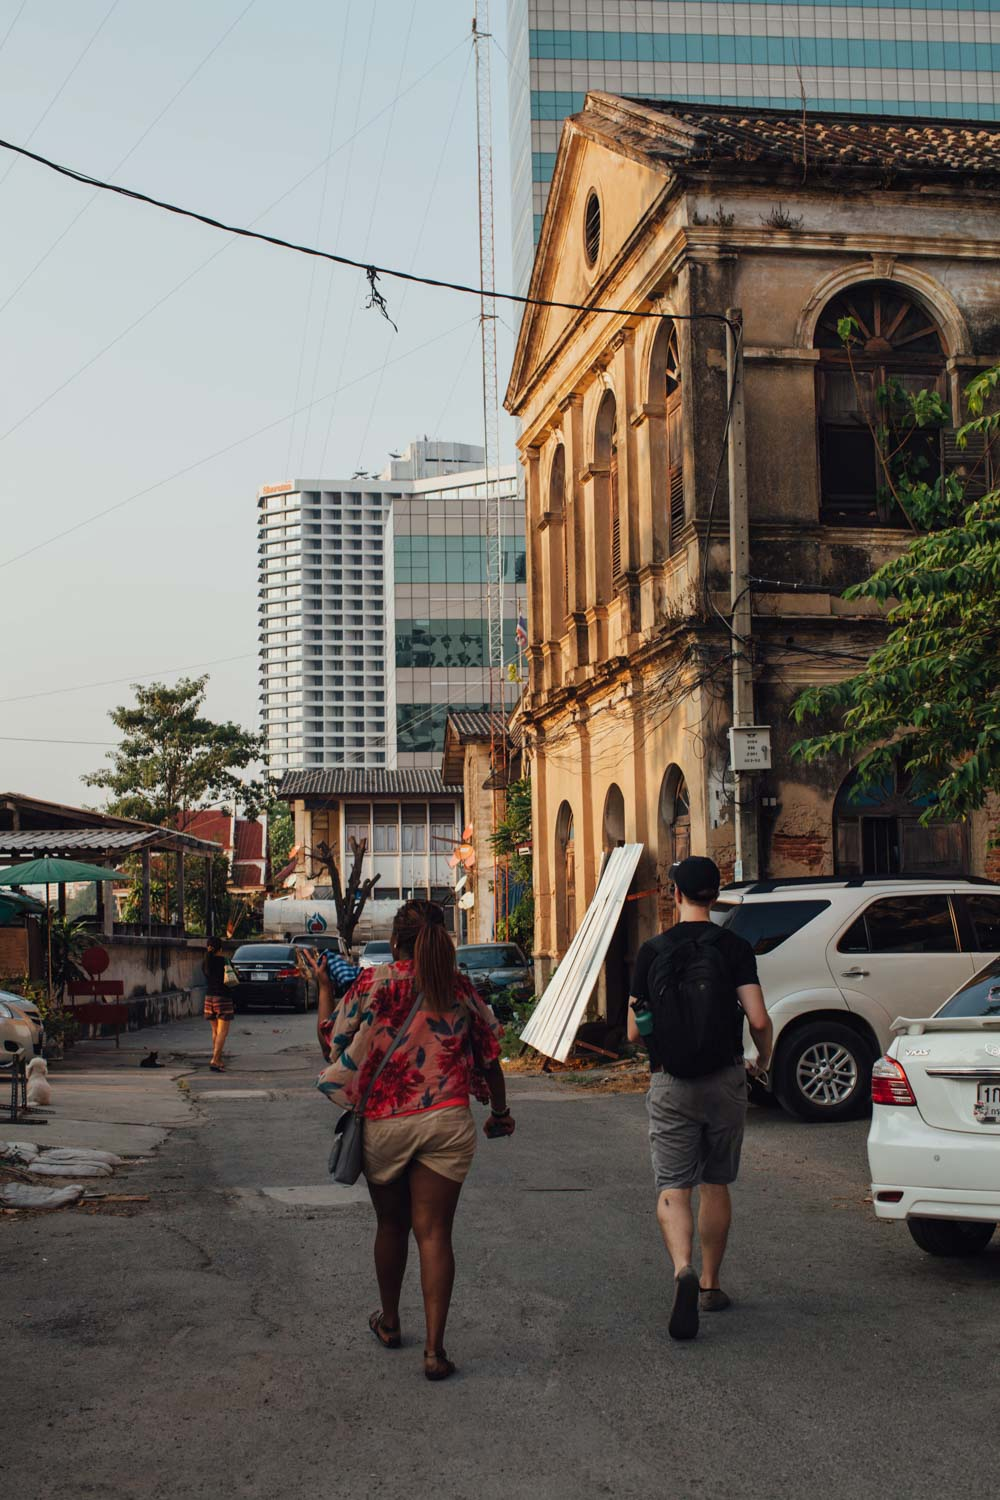 People exploring Old Customs House, Bangkok, Thailand